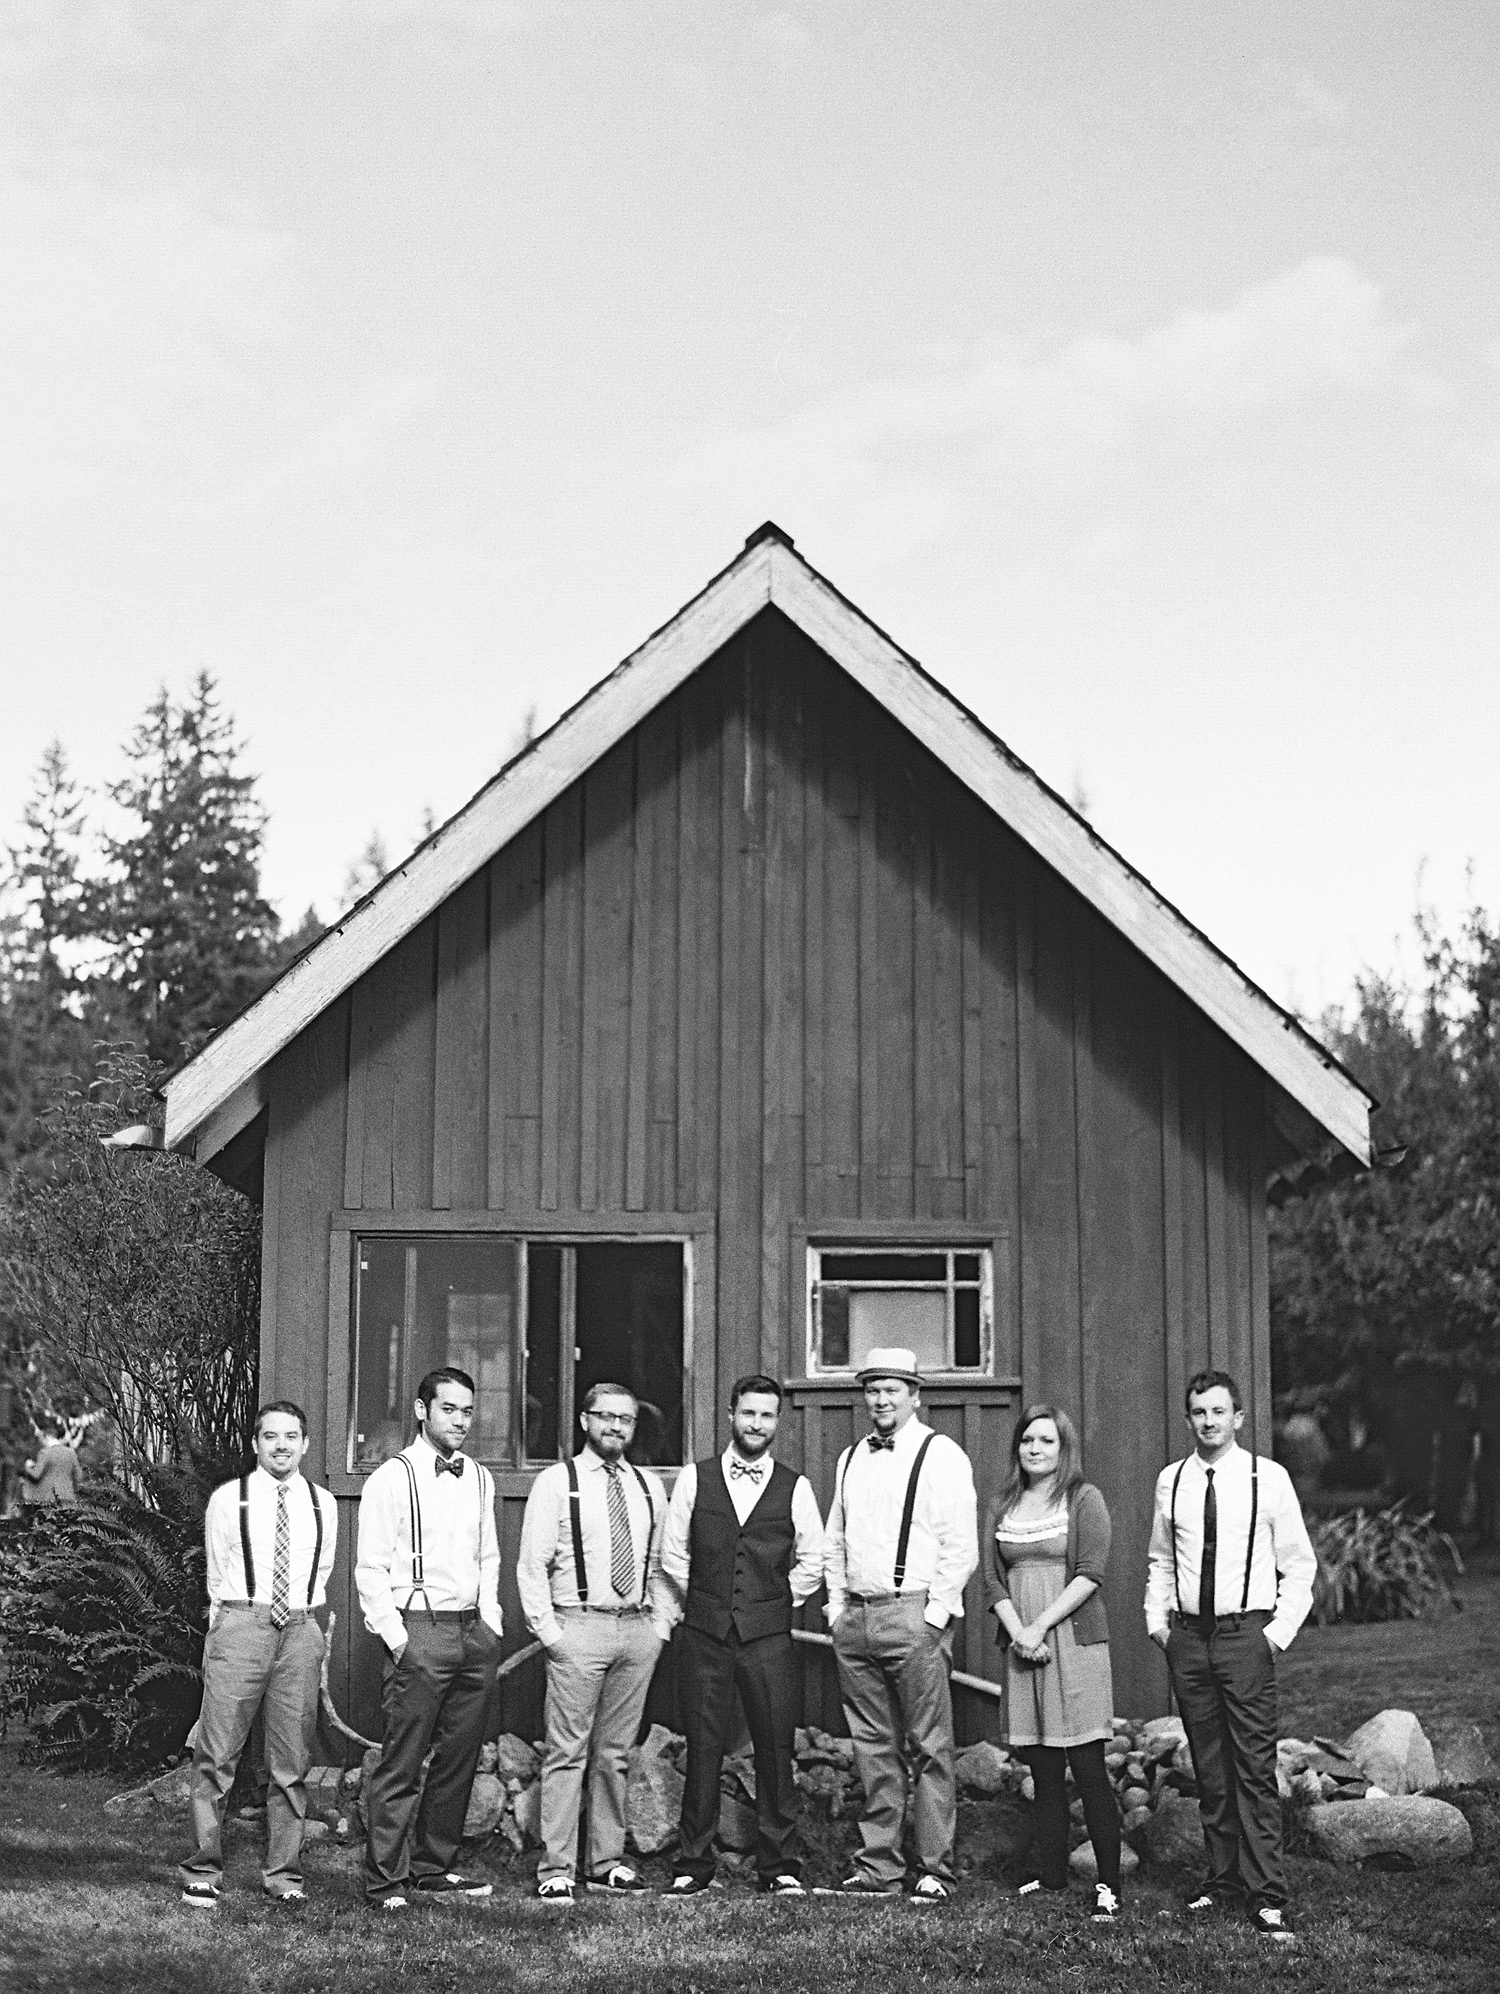 jmblog-farm-kitchen-wedding-seattle-film-ryan-flynn-0016.JPG